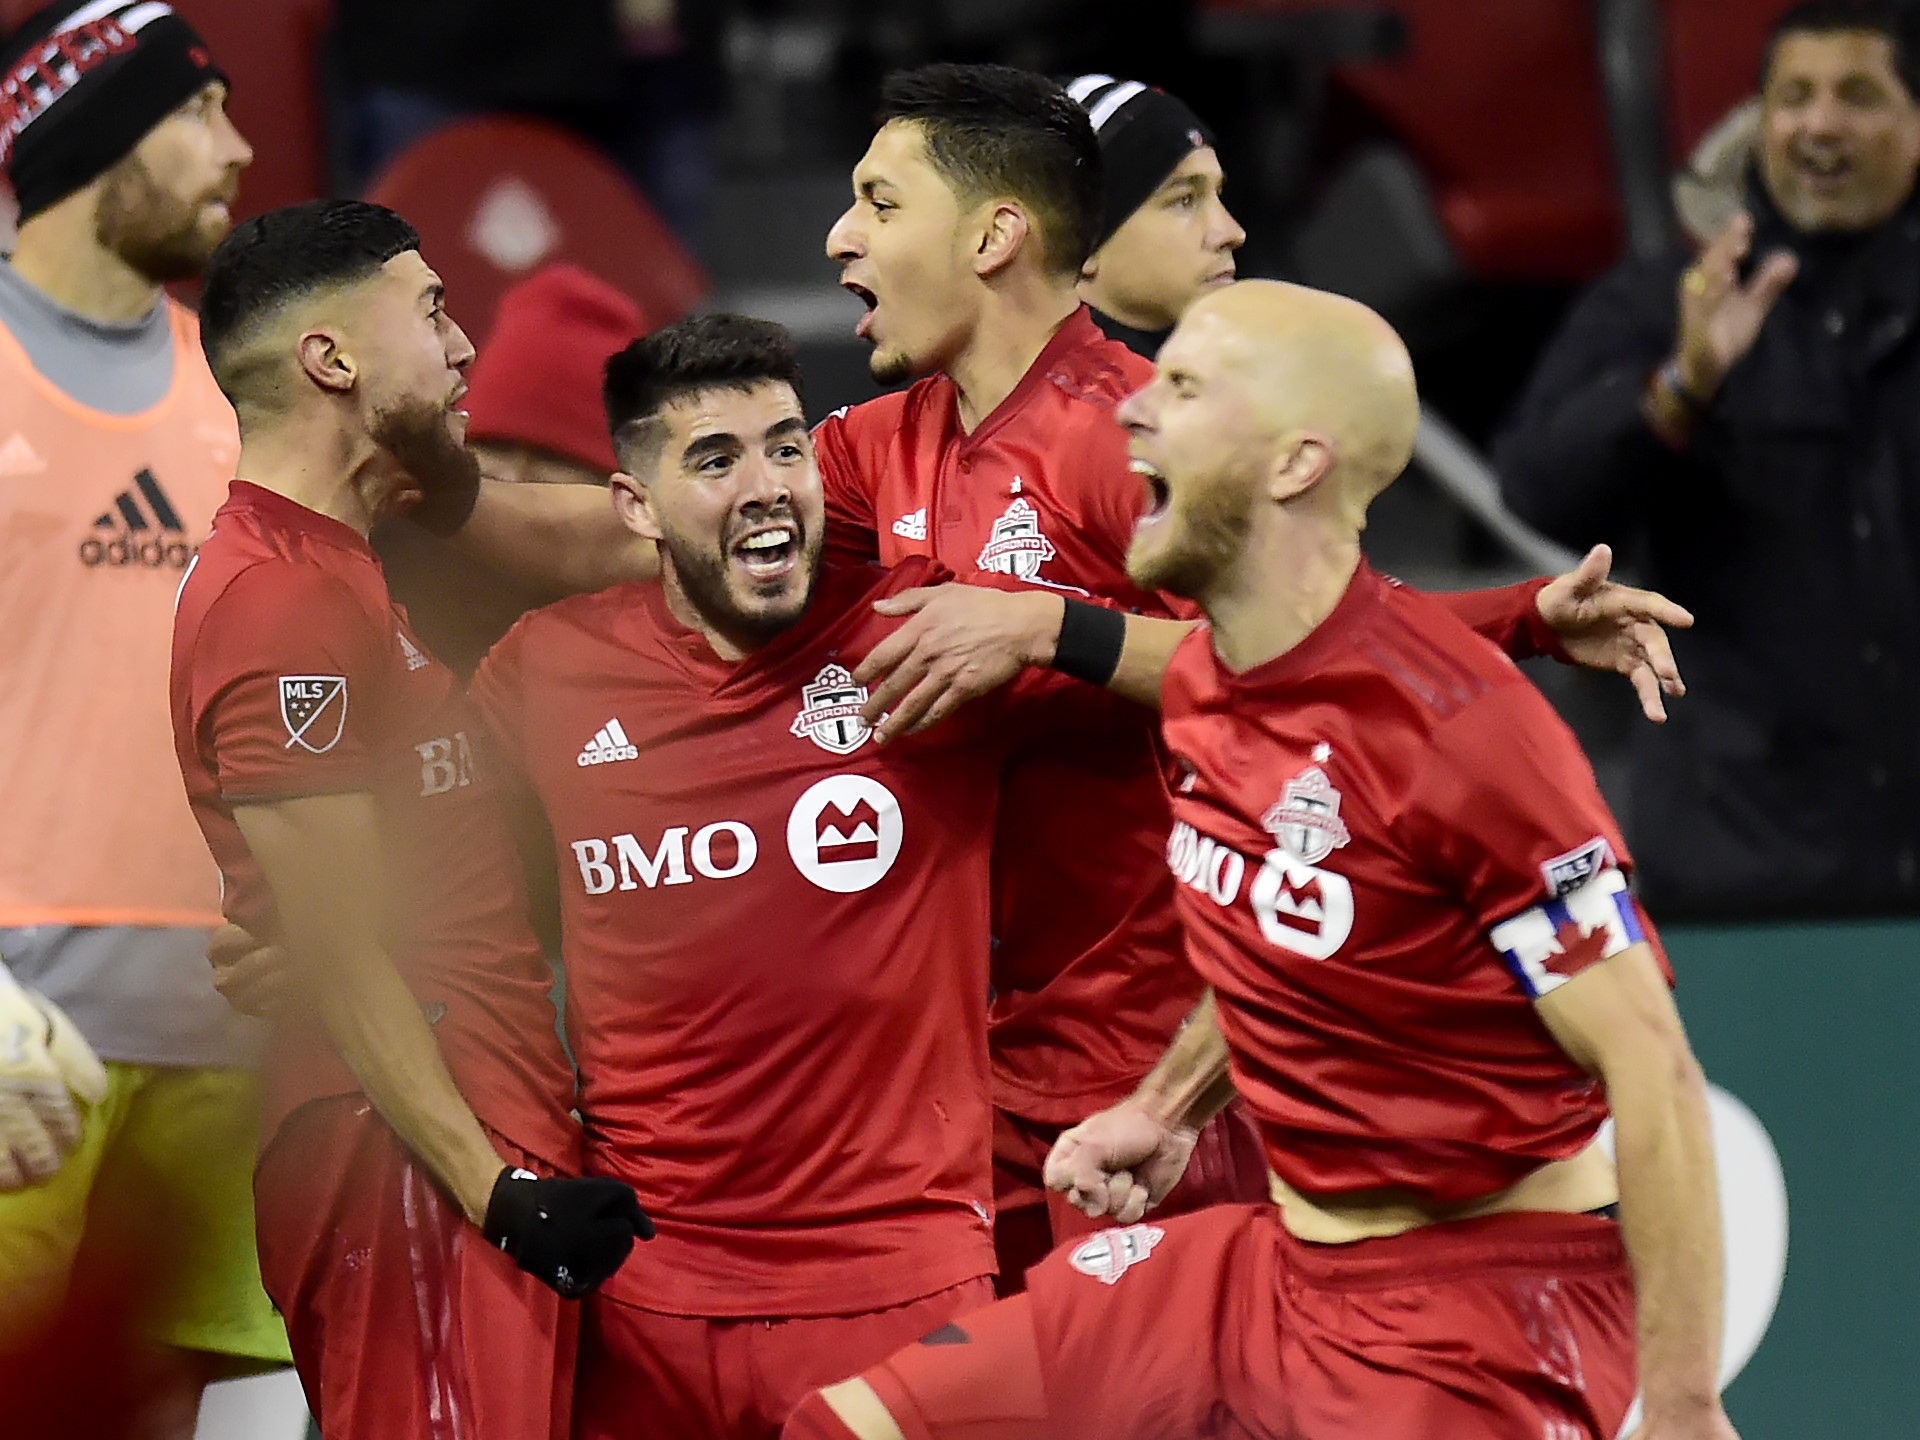 Toronto FC without Altidore, Gonzalez for playoff game with D.C. United